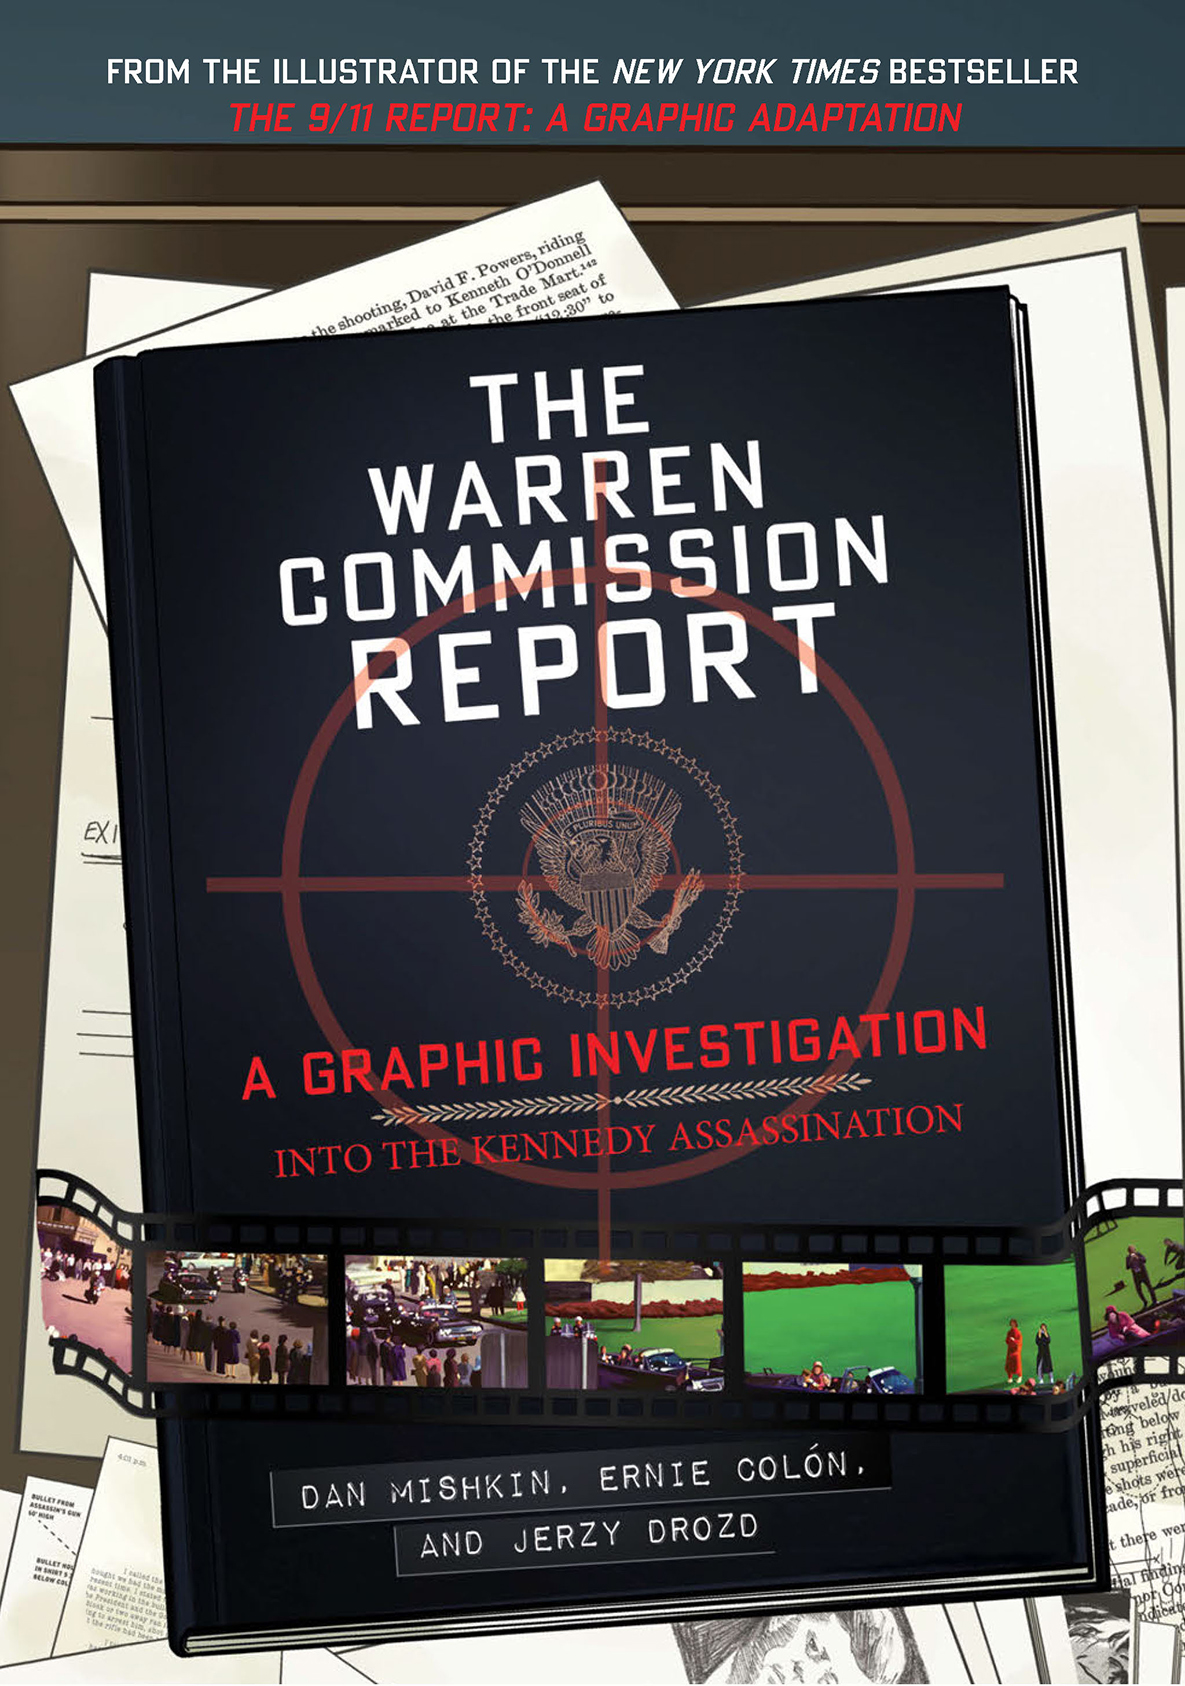 The Warren Commission Report A Graphic Investigation into the Kennedy Assassination